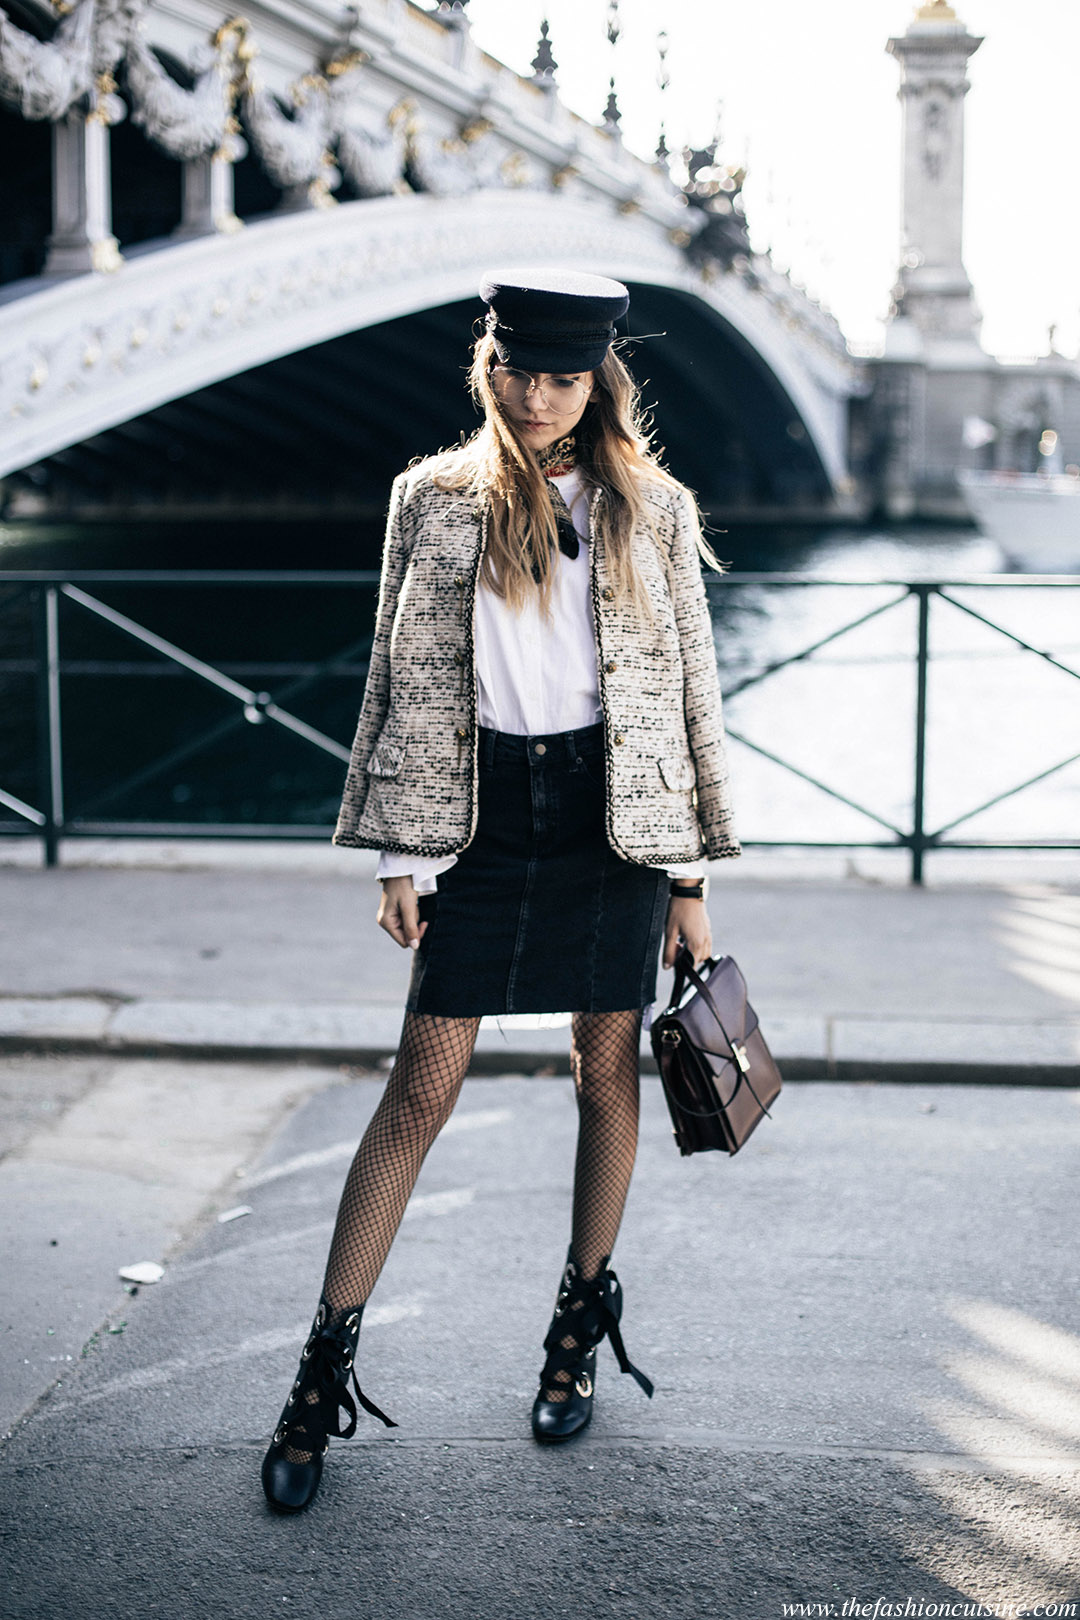 chanel-tweed-jacket-miista-lace-boots-fishnet-tights-sailor-cap-parisian-style-paris-fashion-week-pont-alexandre-fashion-blogger-street-style-1